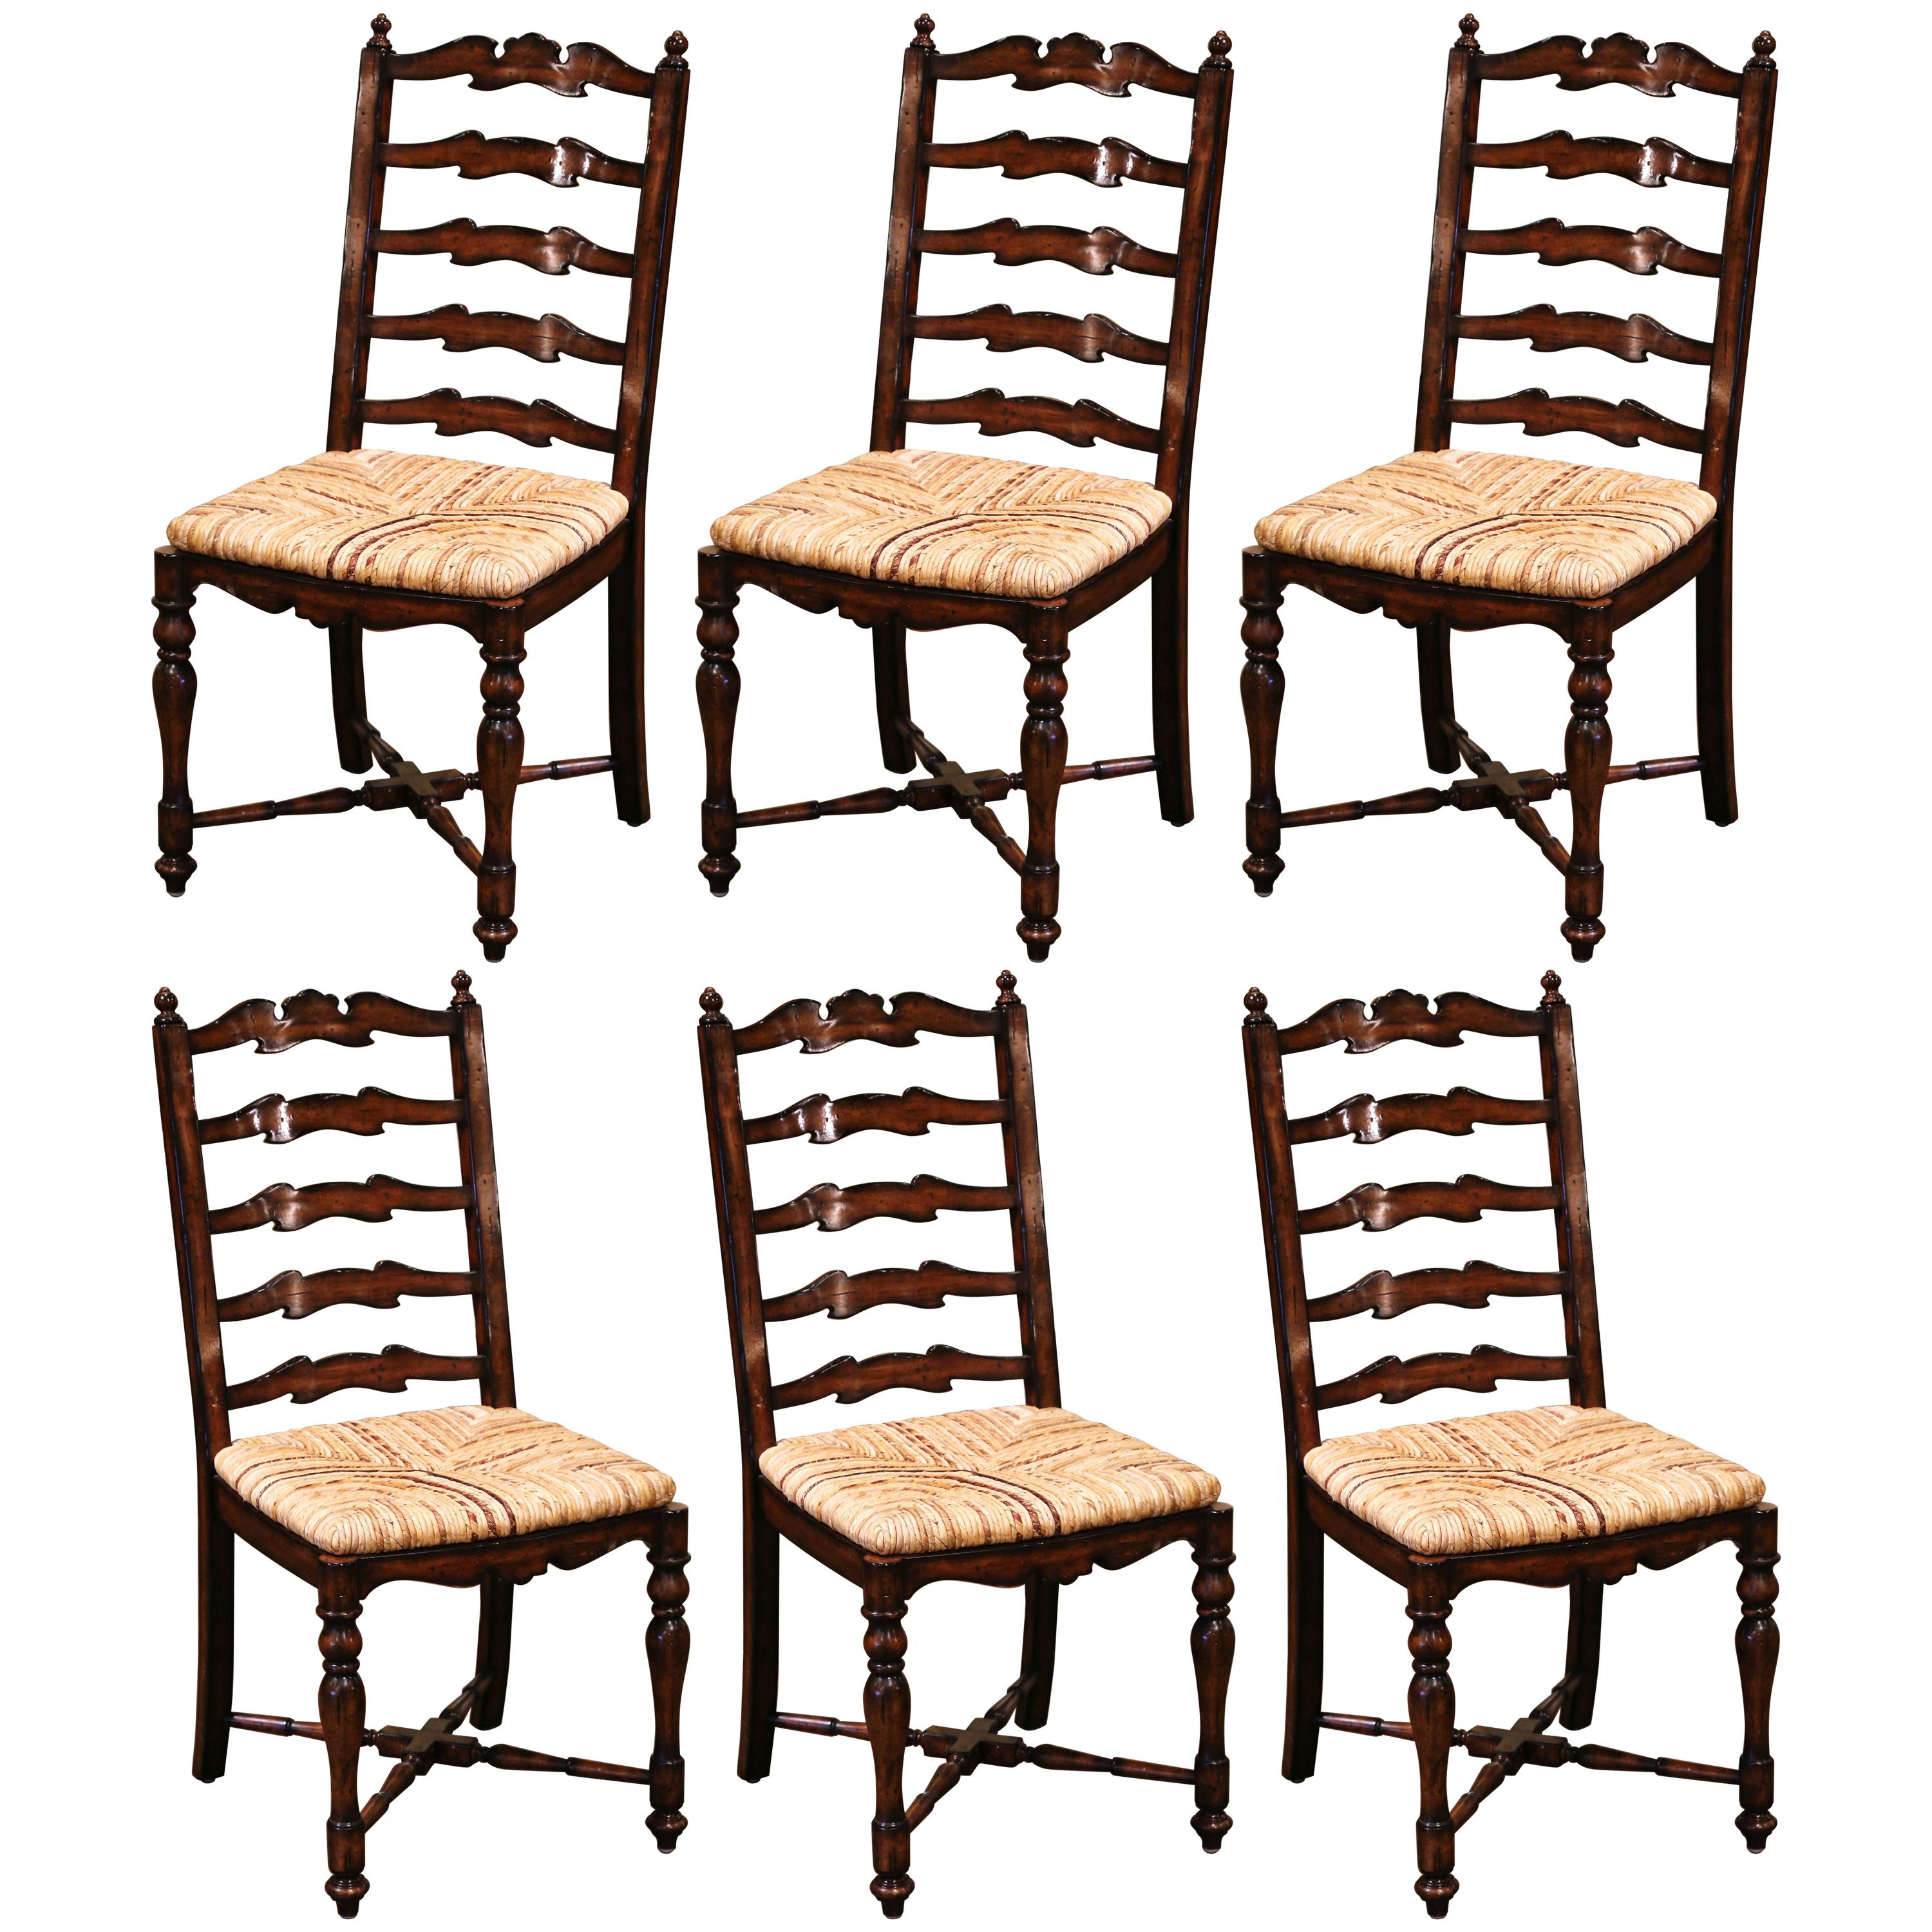 Country French Carved Walnut Ladder Back Chairs with Rush Seat, Set of Six